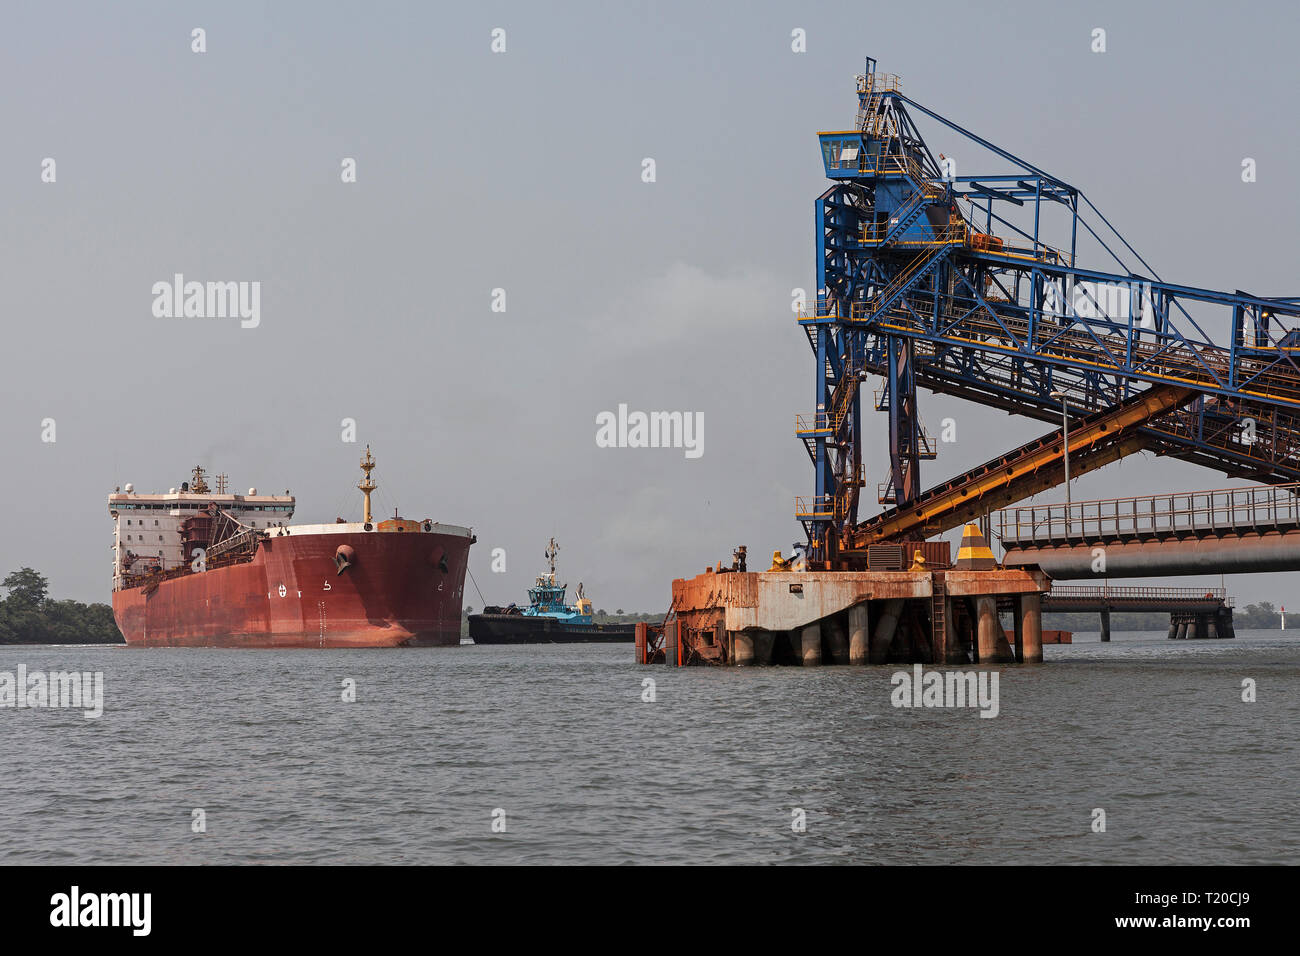 Port operations for managing and transporting iron ore.Tug manoeuvring and turning transhipment vessel before docking and loading up ore at jetty - Stock Image